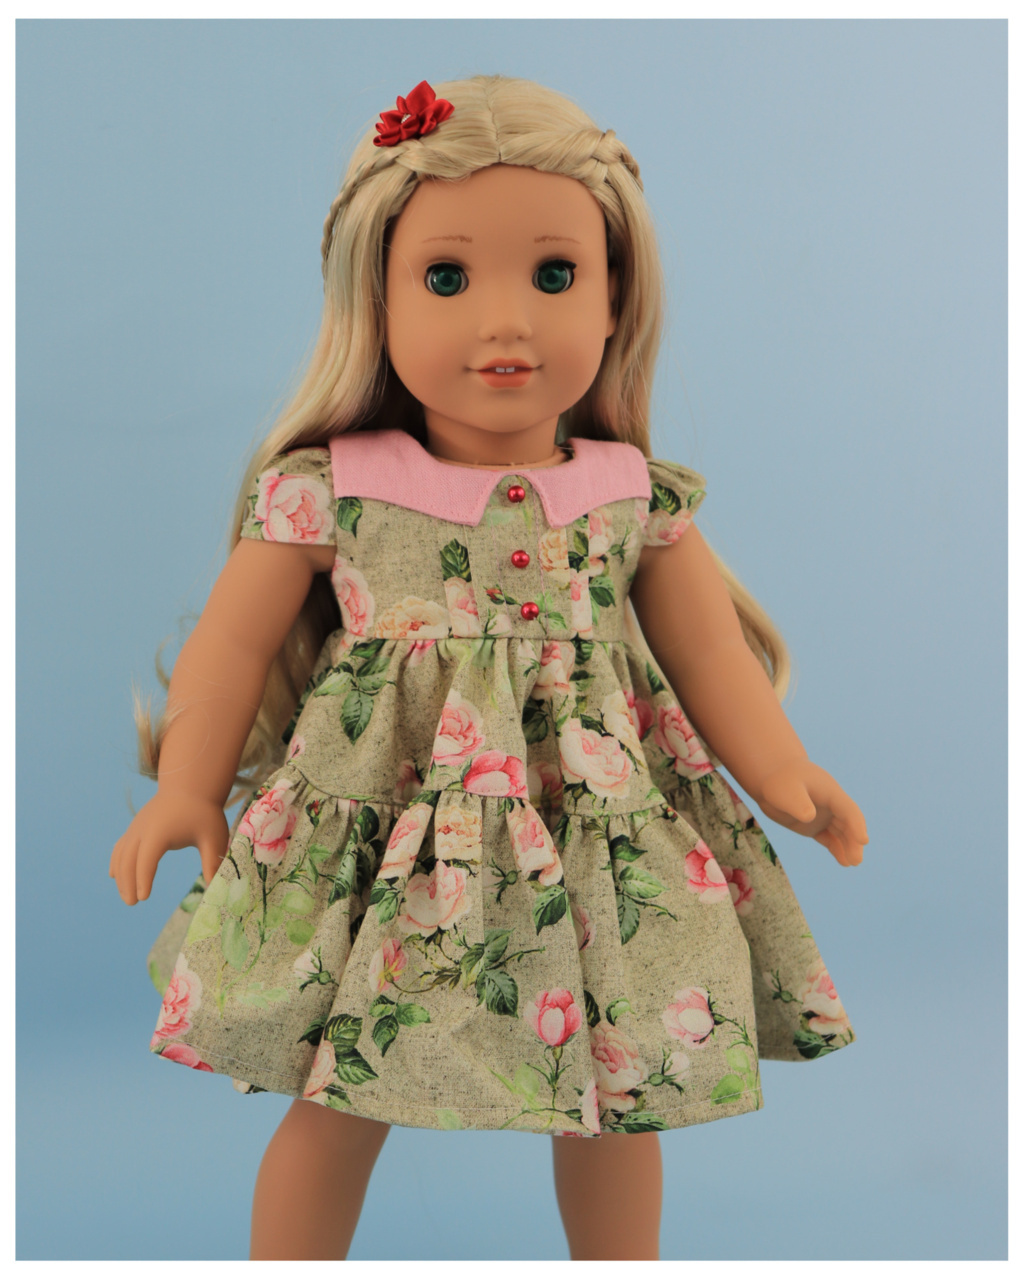 Doll clothes pdf sewing pattern, frocks & frolics, sewing for dolls, 18 inch doll, american doll